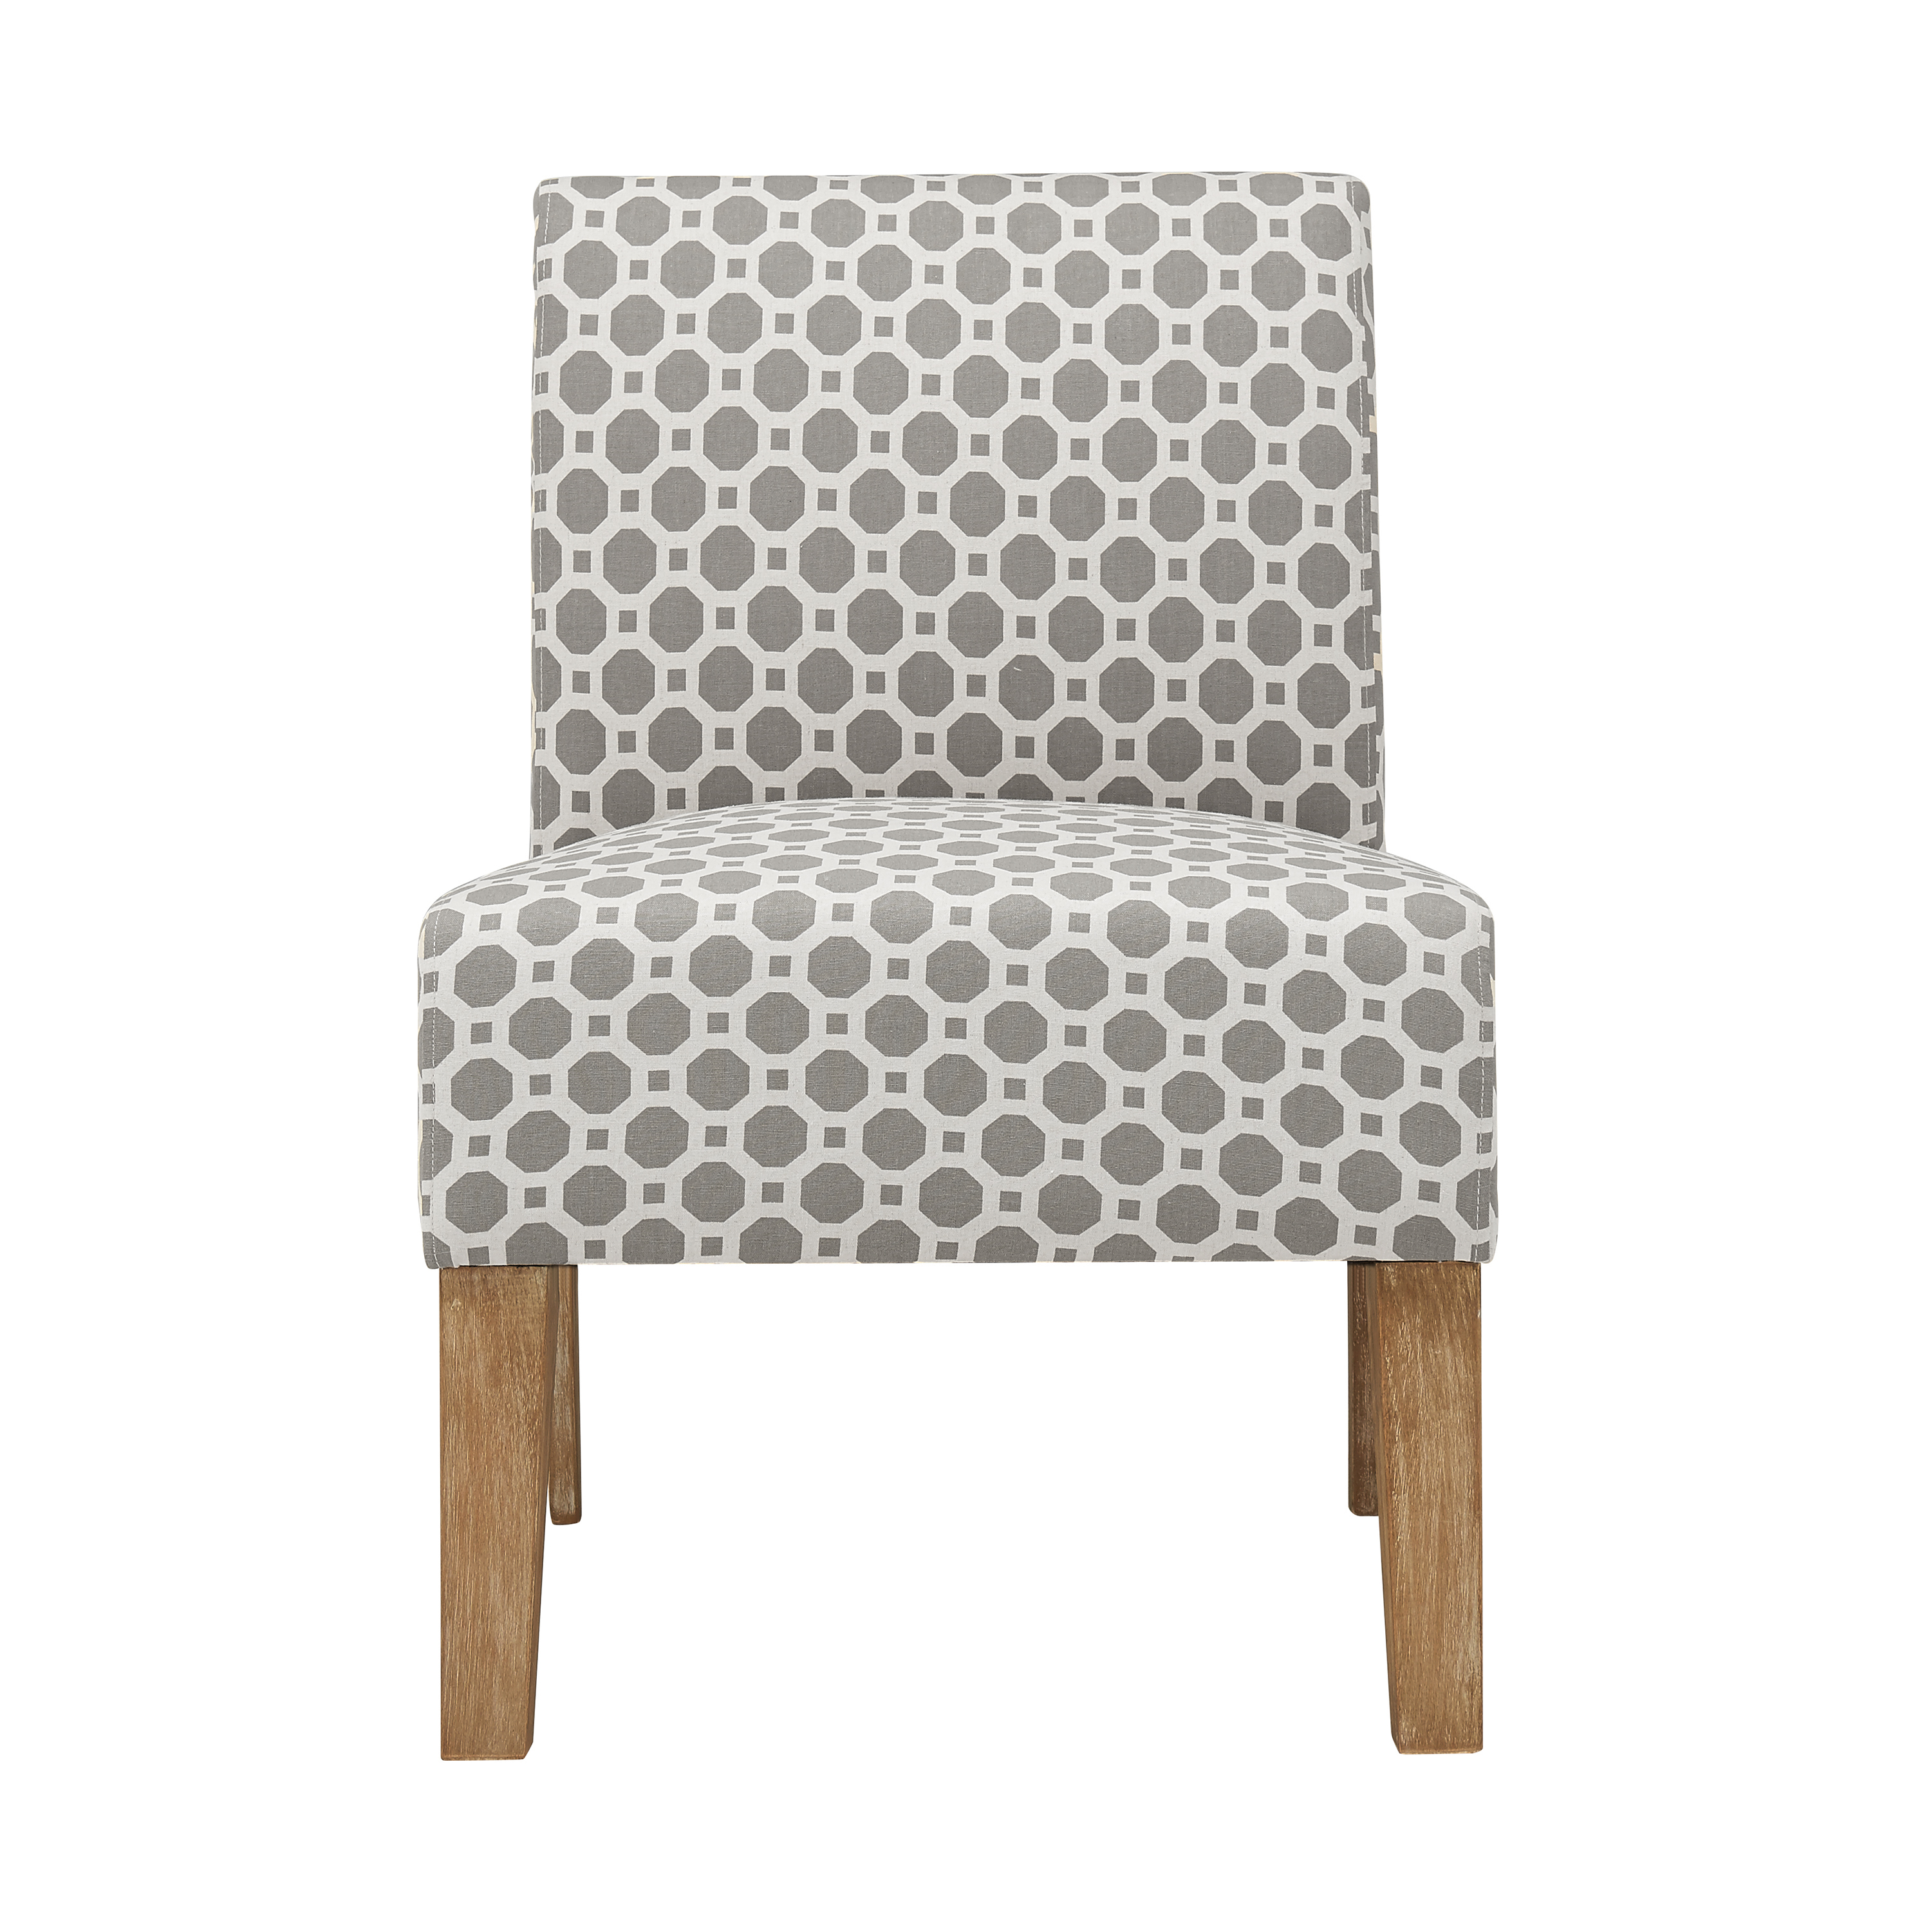 accent chairs under 100 2 portable lift chair walmart